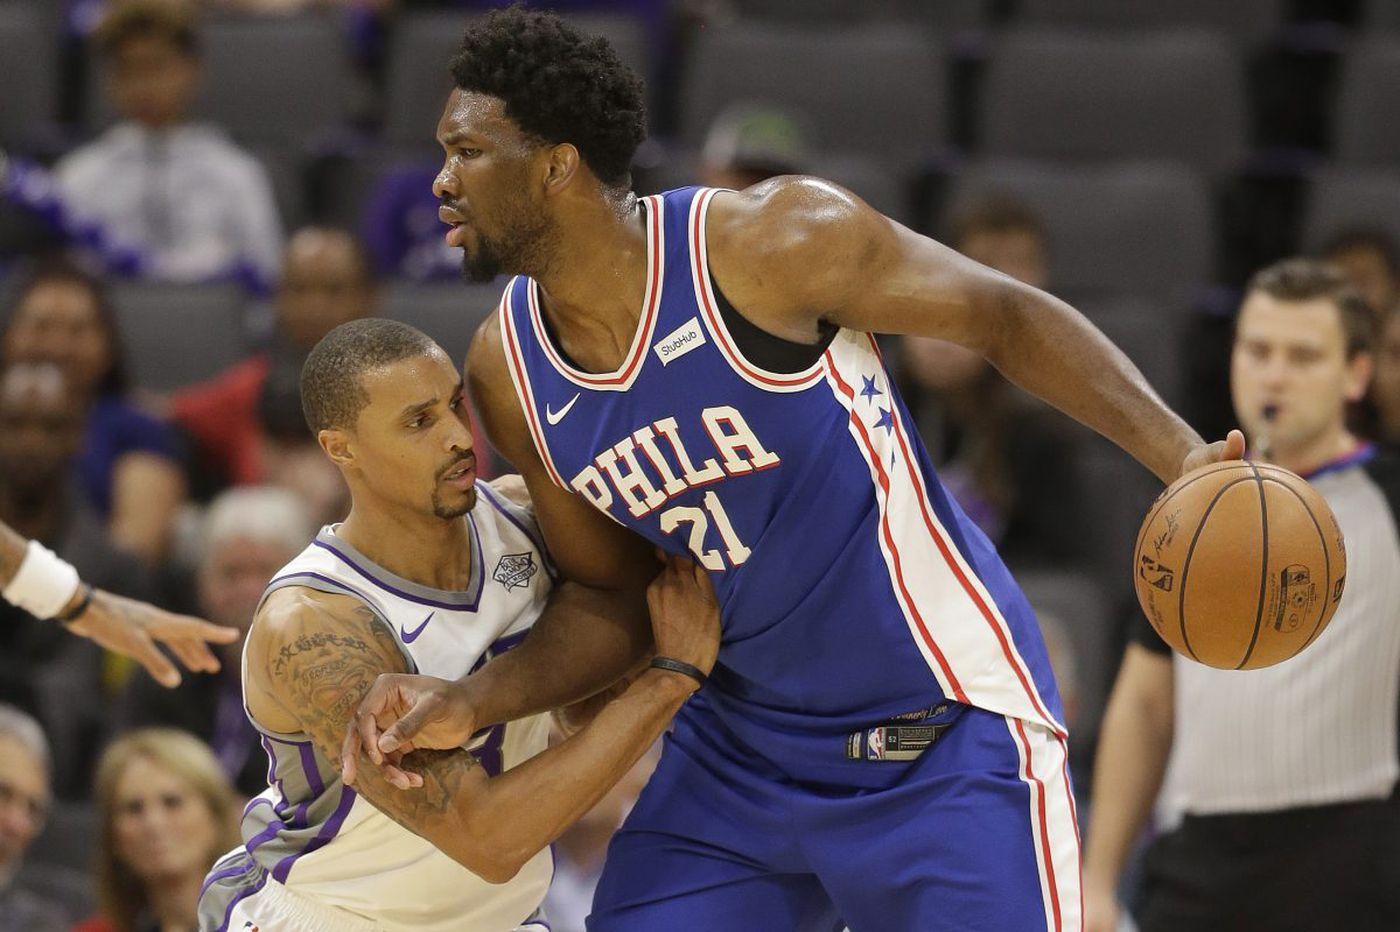 Sluggish Sixers fall to Kings as 5-game winning streak ends